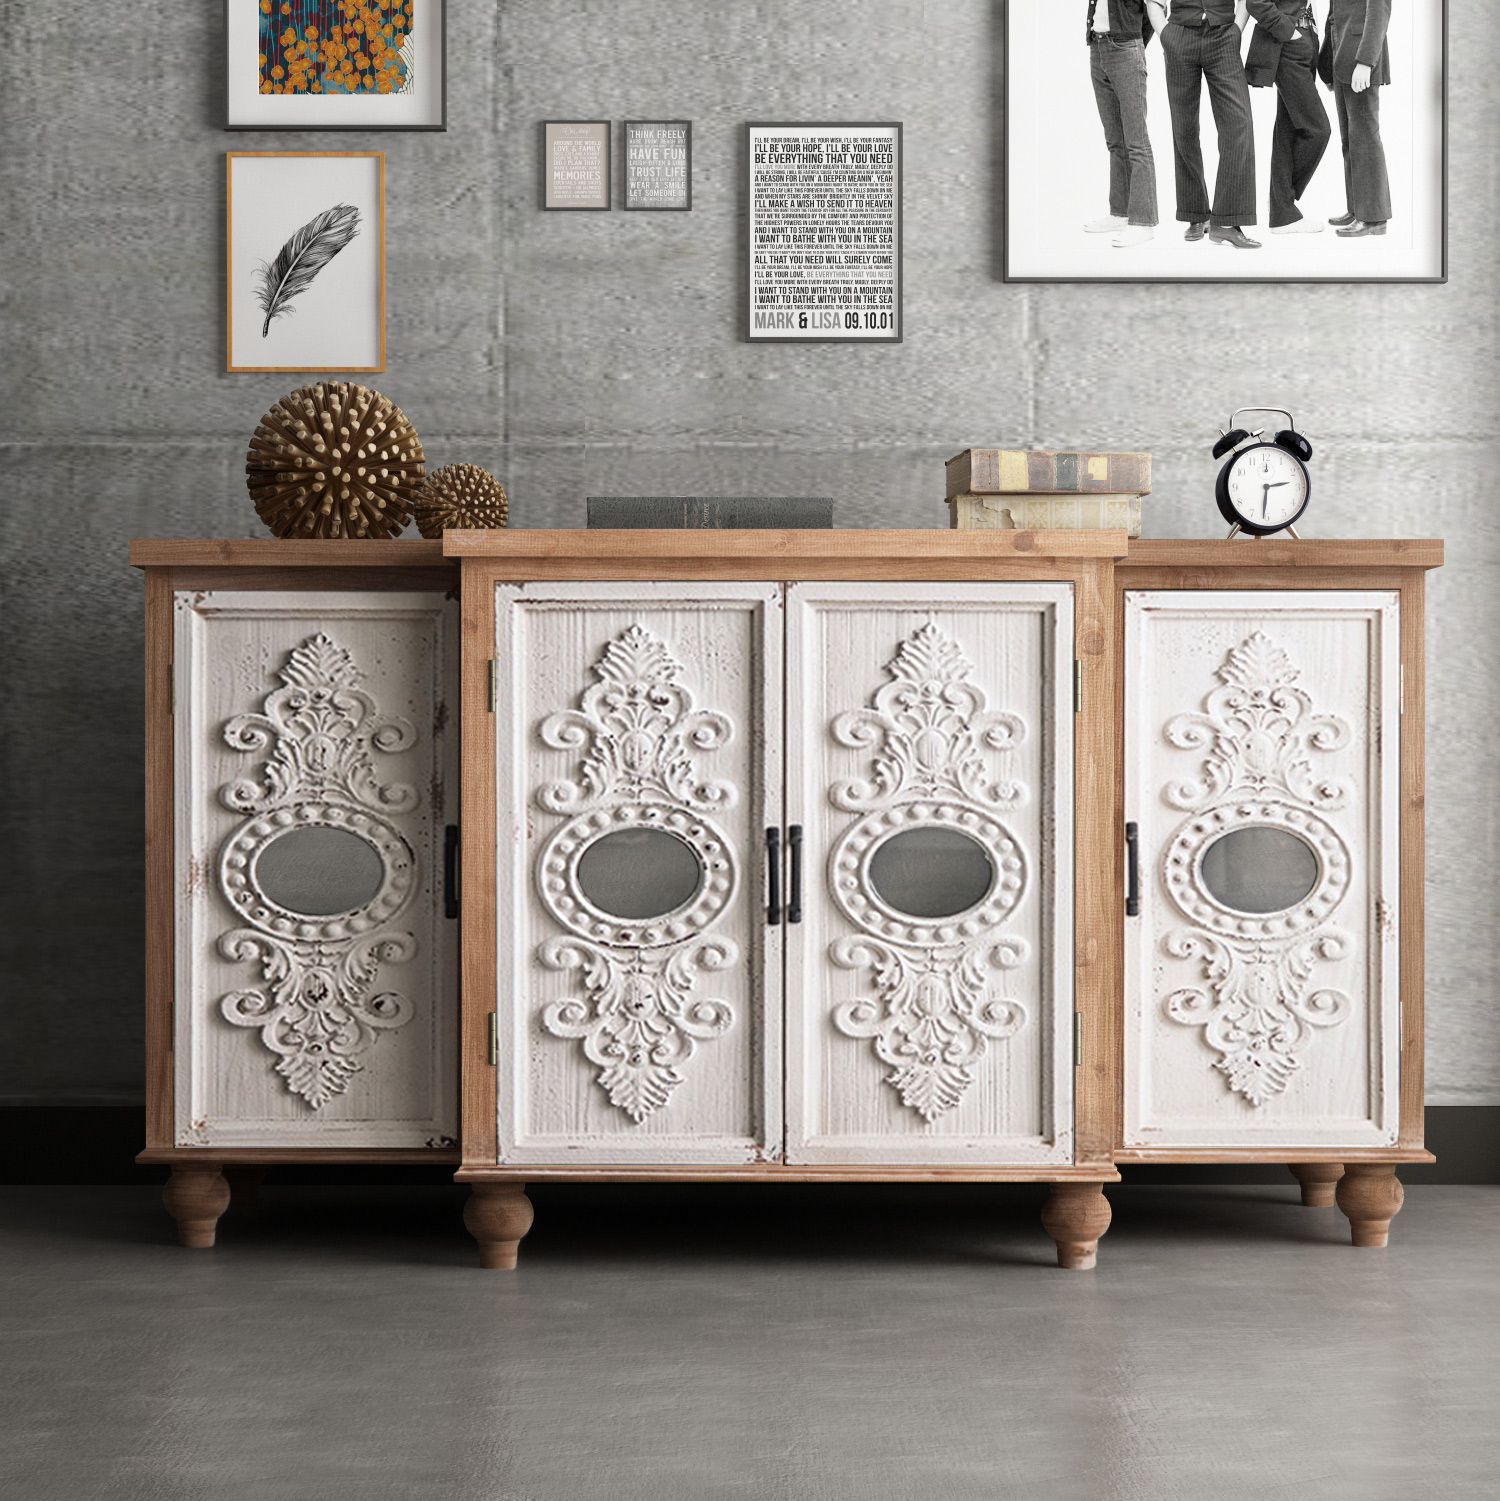 American retro solid wood furniture porch cabinet storage cabinet carved light luxury dining side cabinet B & B living room fireplace decoration cabinet